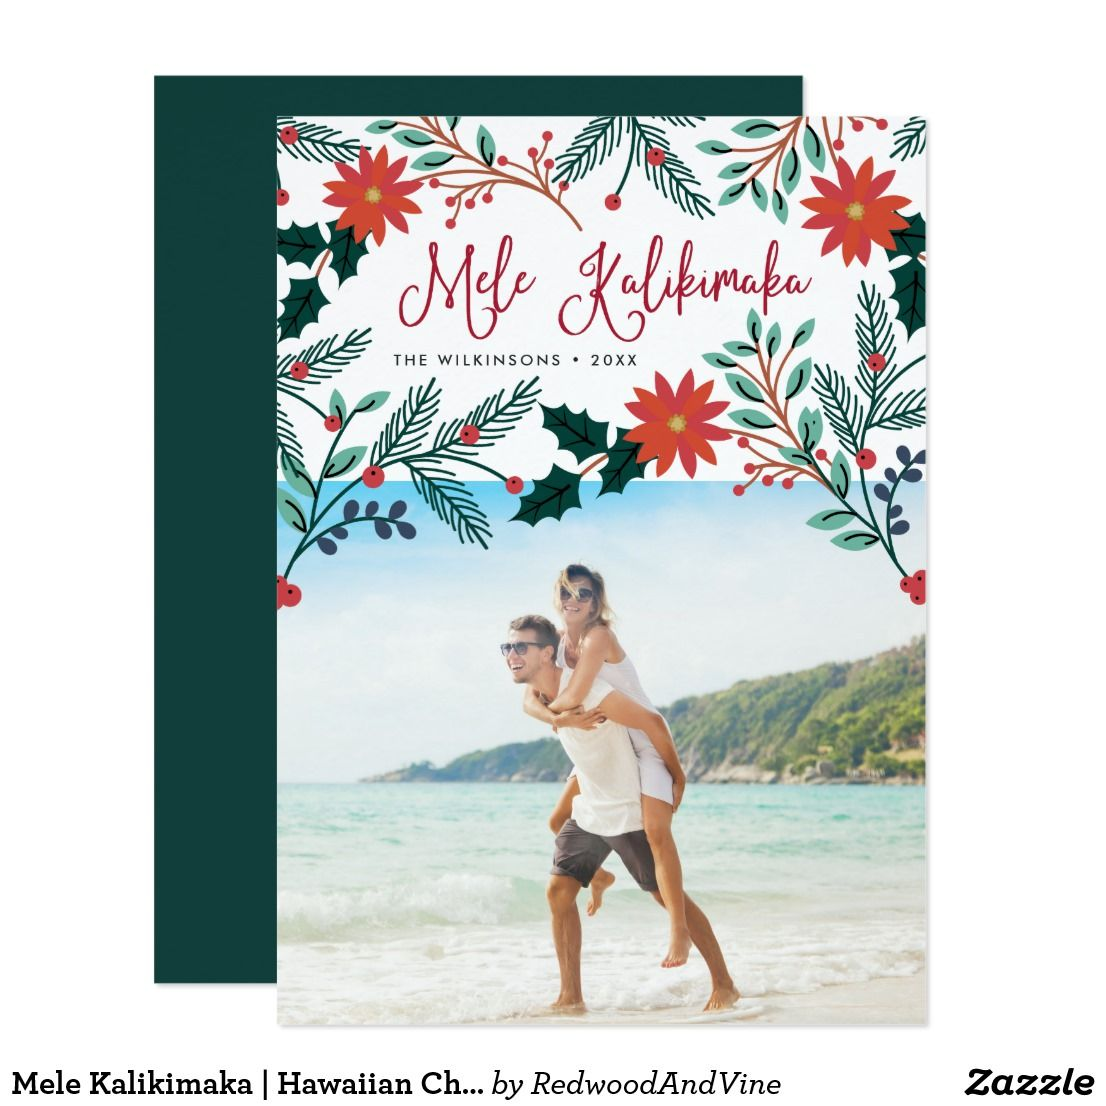 Mele Kalikimaka | Hawaiian Christmas Photo Card | Christmas photo ...